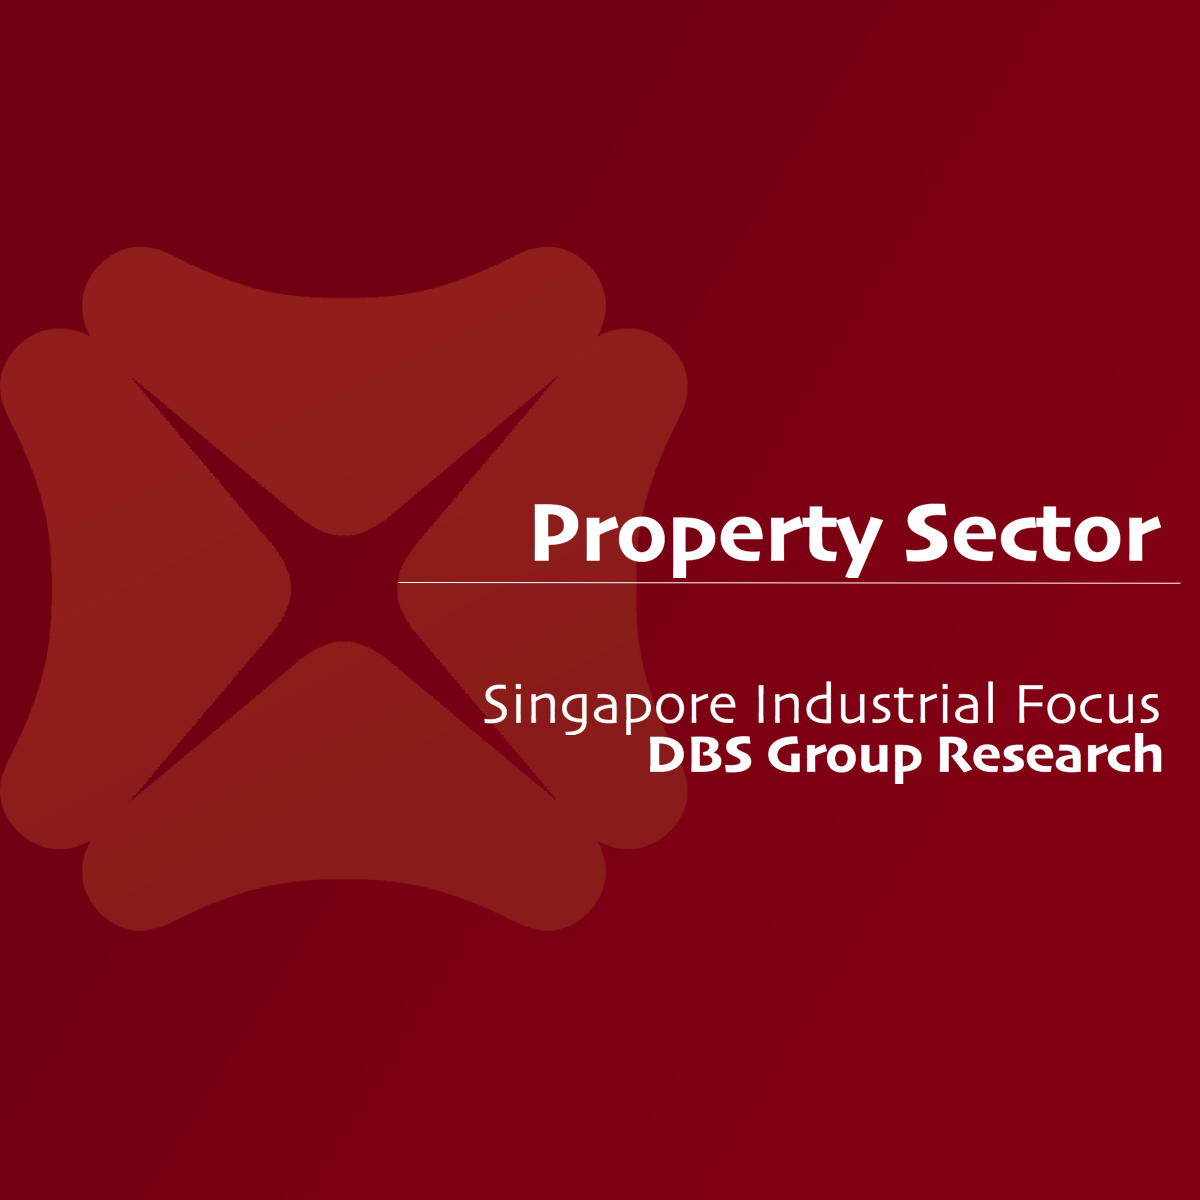 Singapore Property - DBS Group Research Research 2018-07-06: Hitting A Roadblock